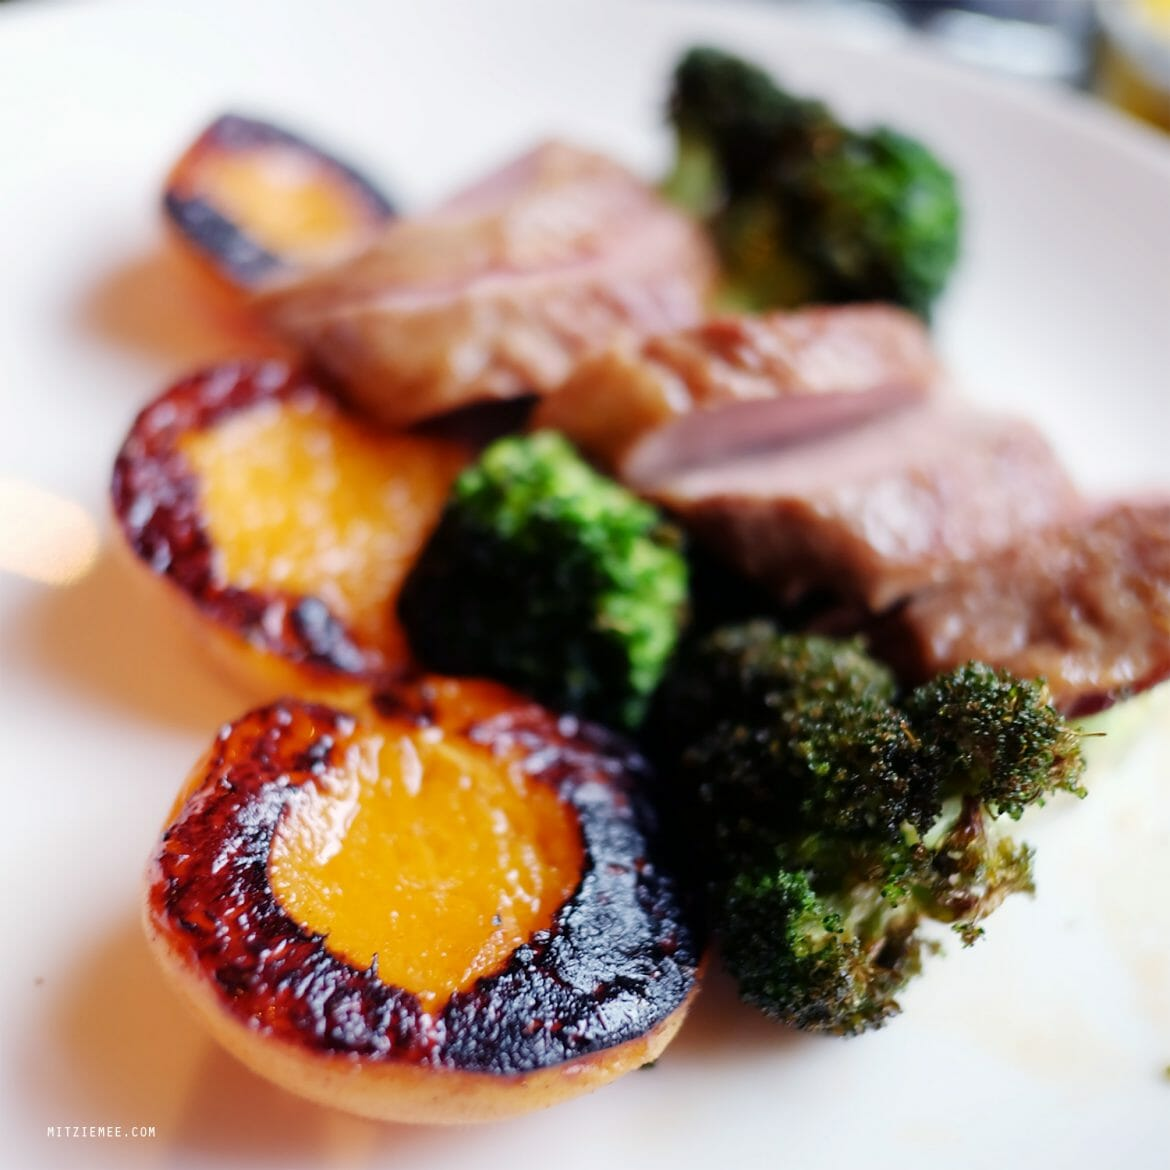 Pork neck with apricots at Faun, Brooklyn